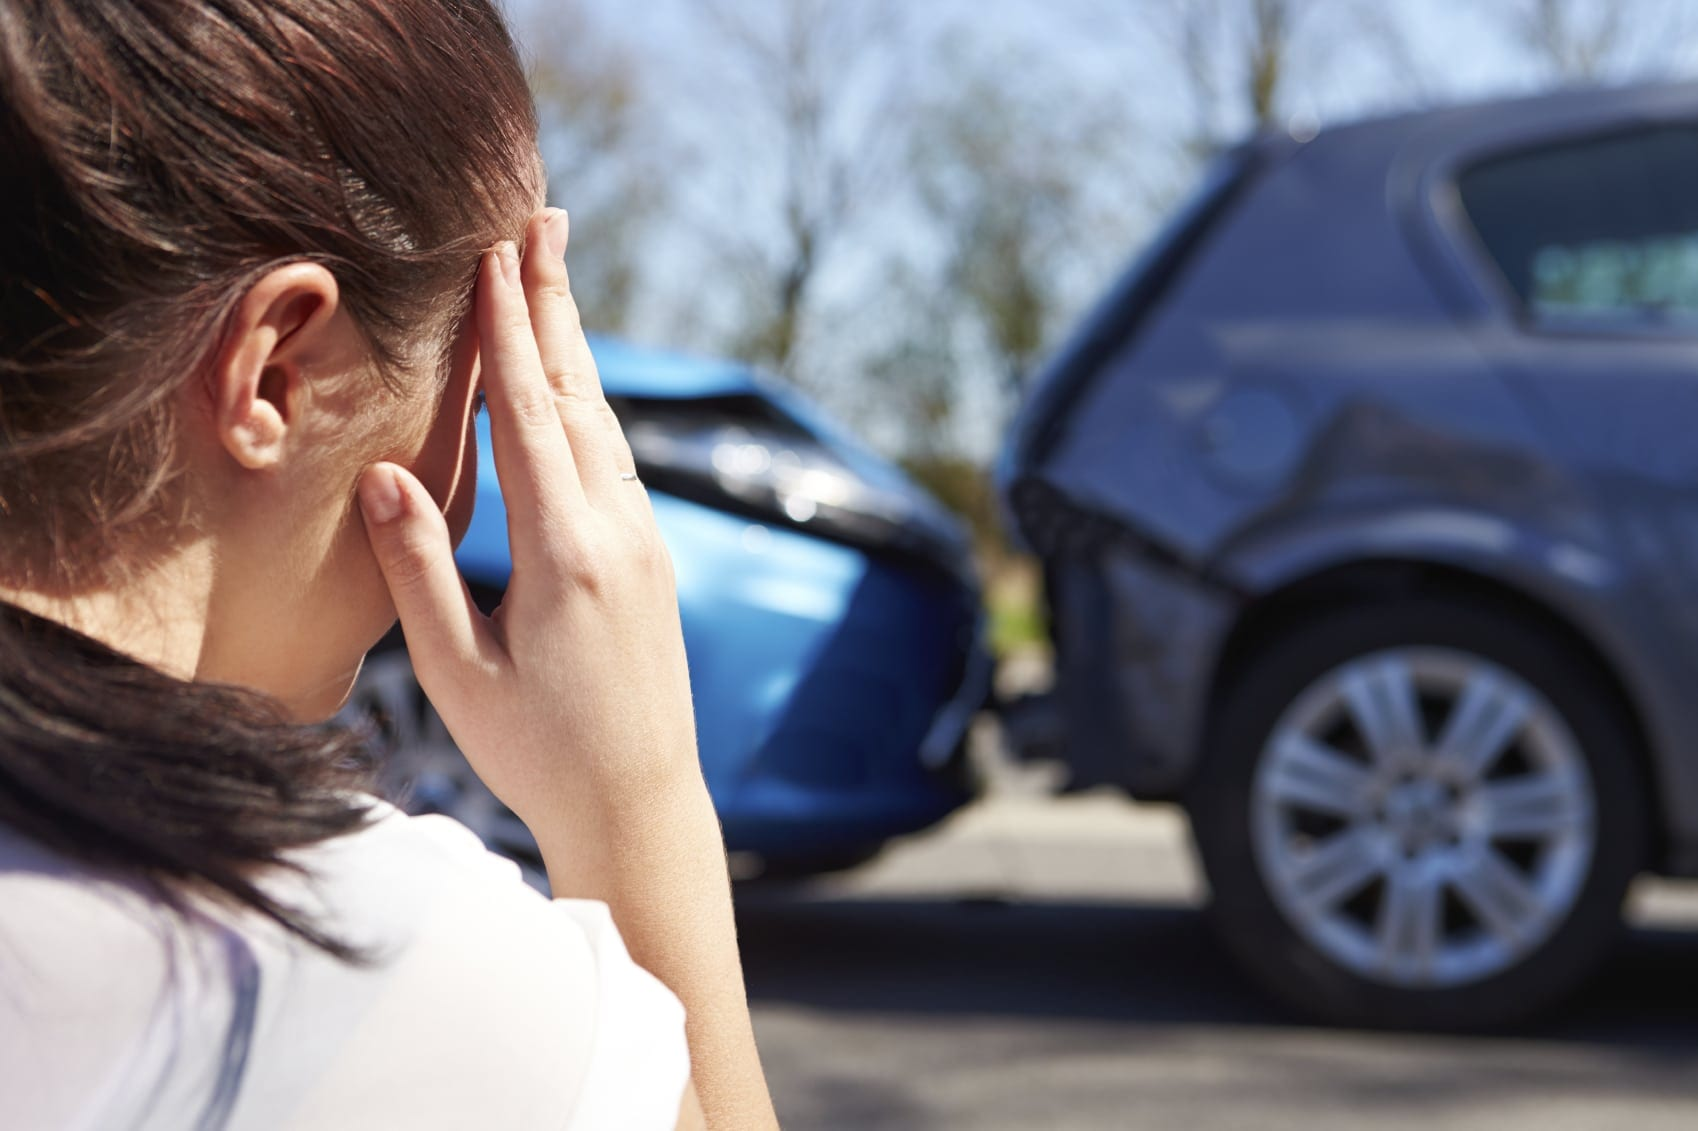 Woman With Worried Look After Rear-end Car Accident Stock Photo